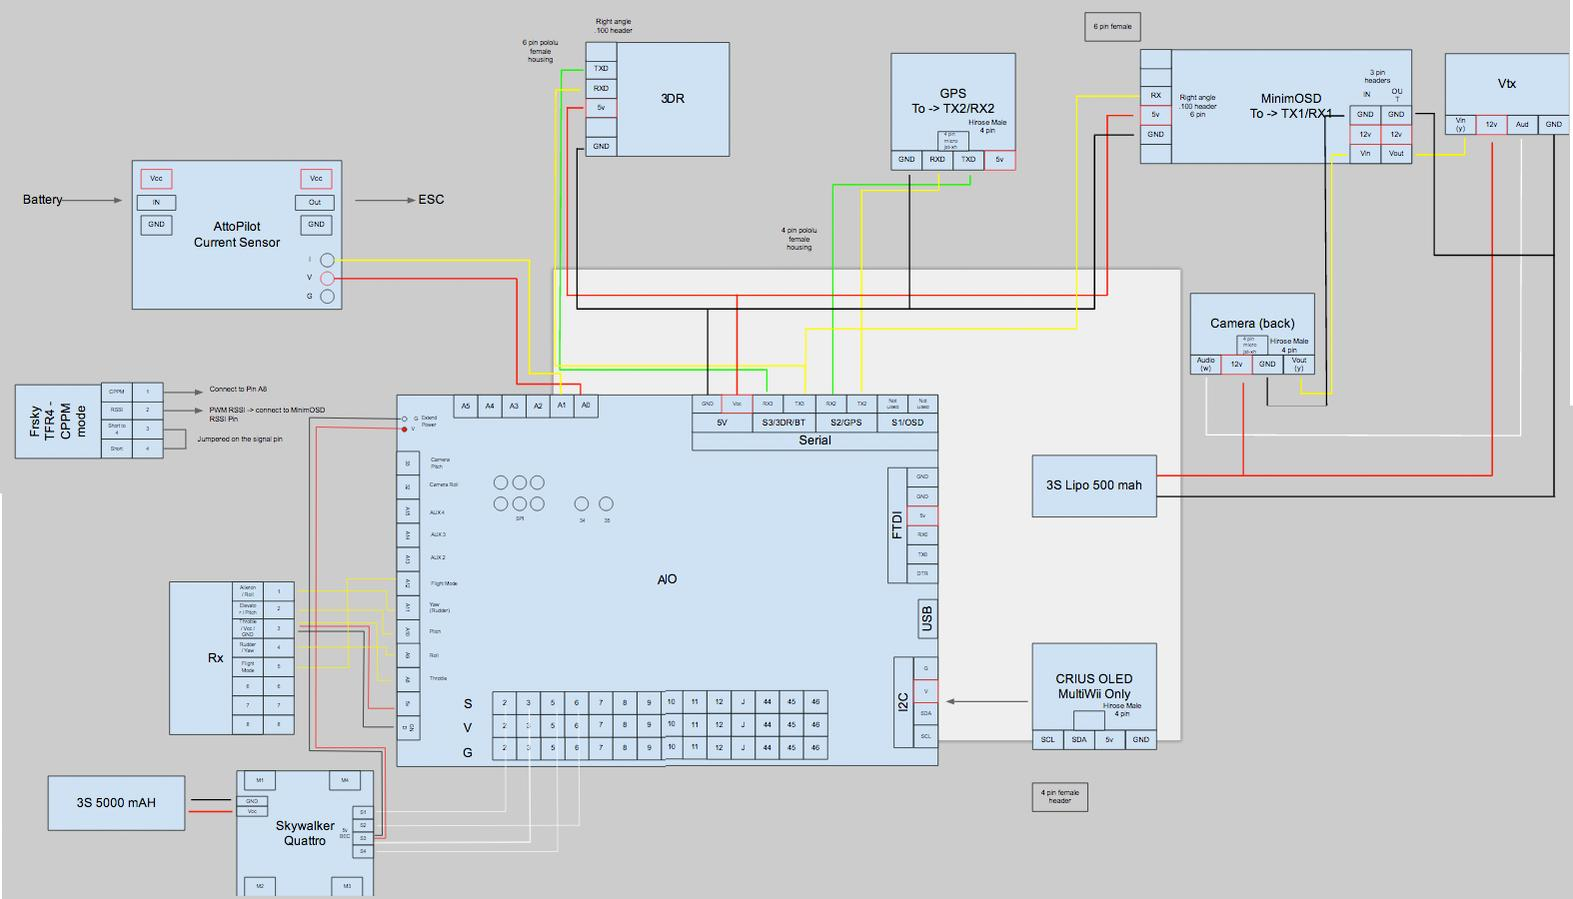 apm arducopter wiring diagram wiring diagram image result for apm arducopter wiring diagram